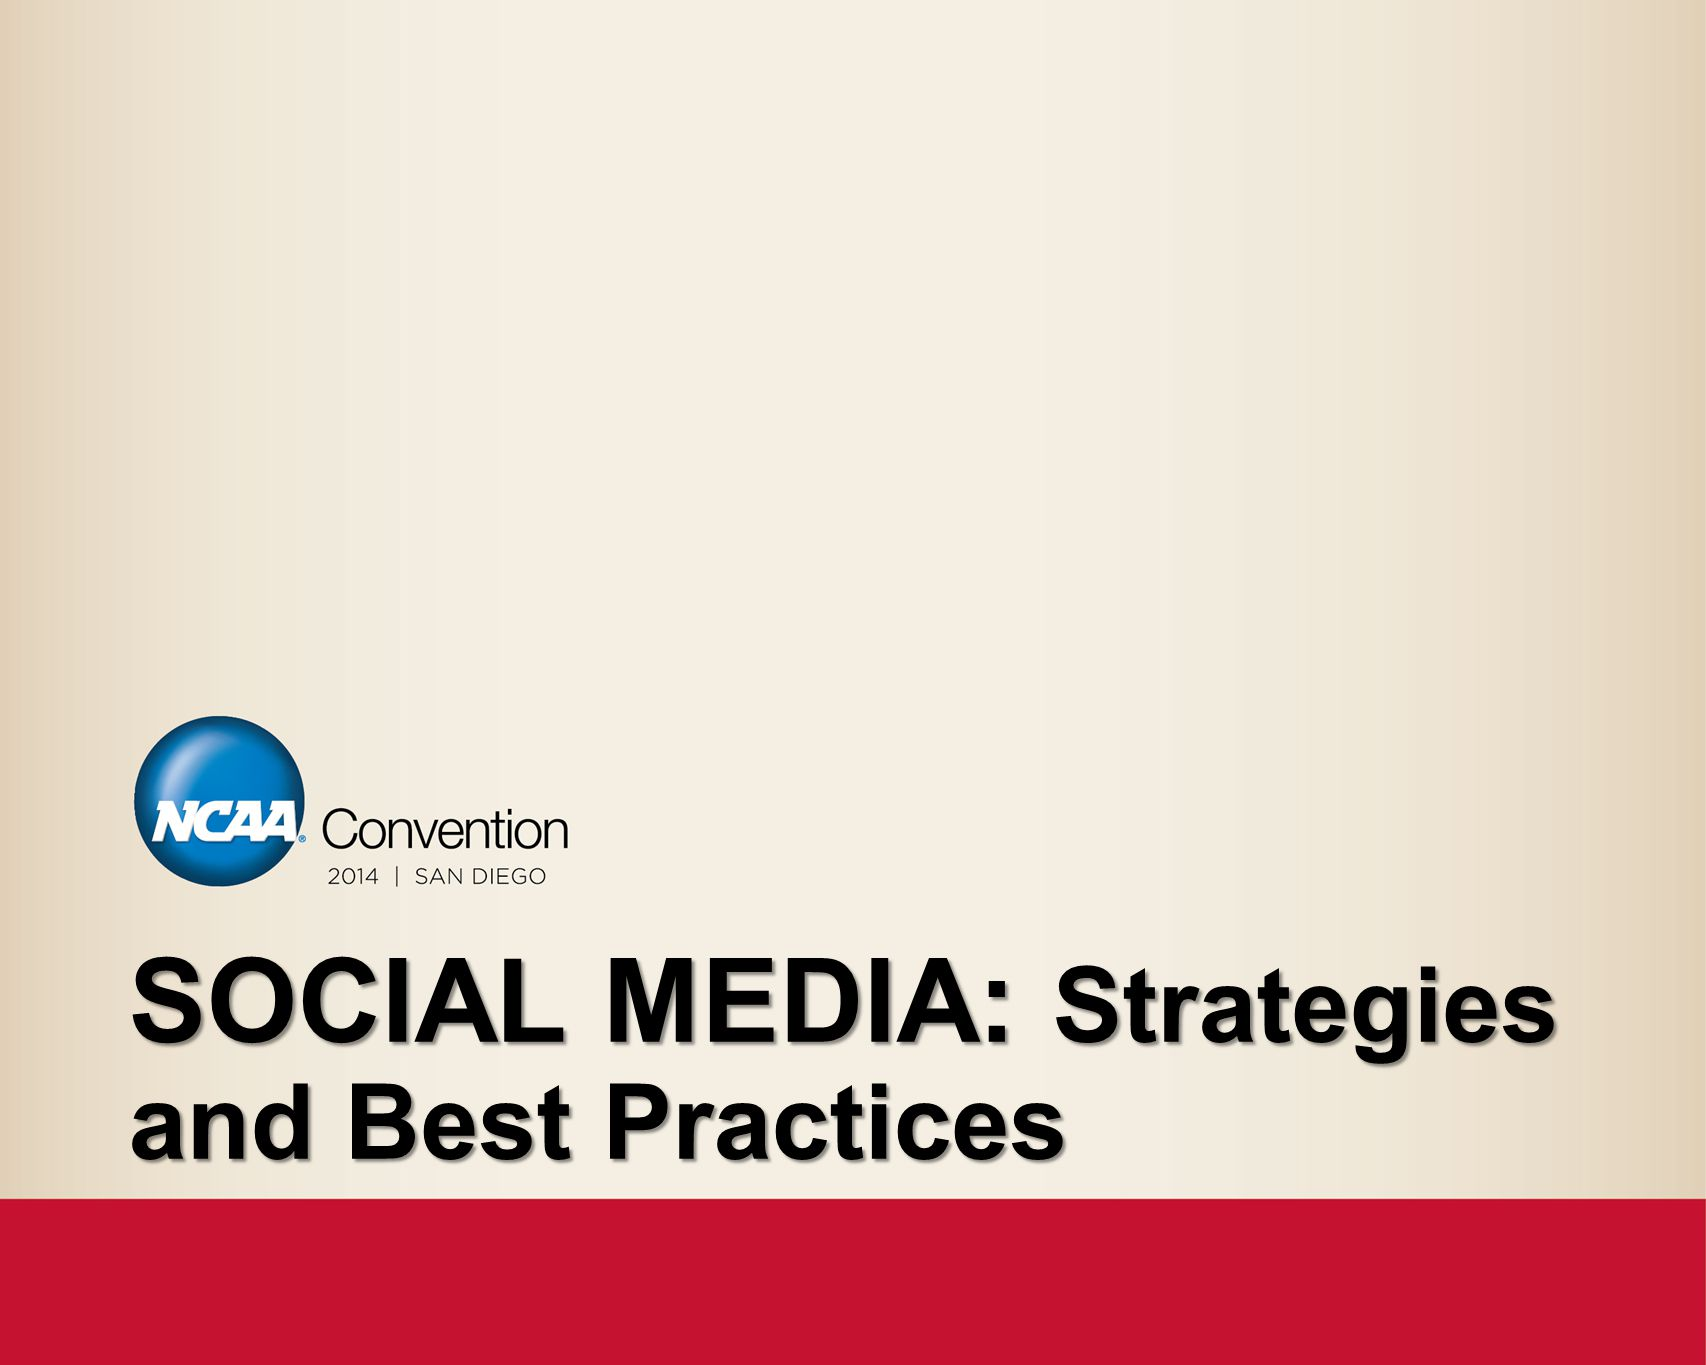 SOCIAL MEDIA: Strategies and Best Practices